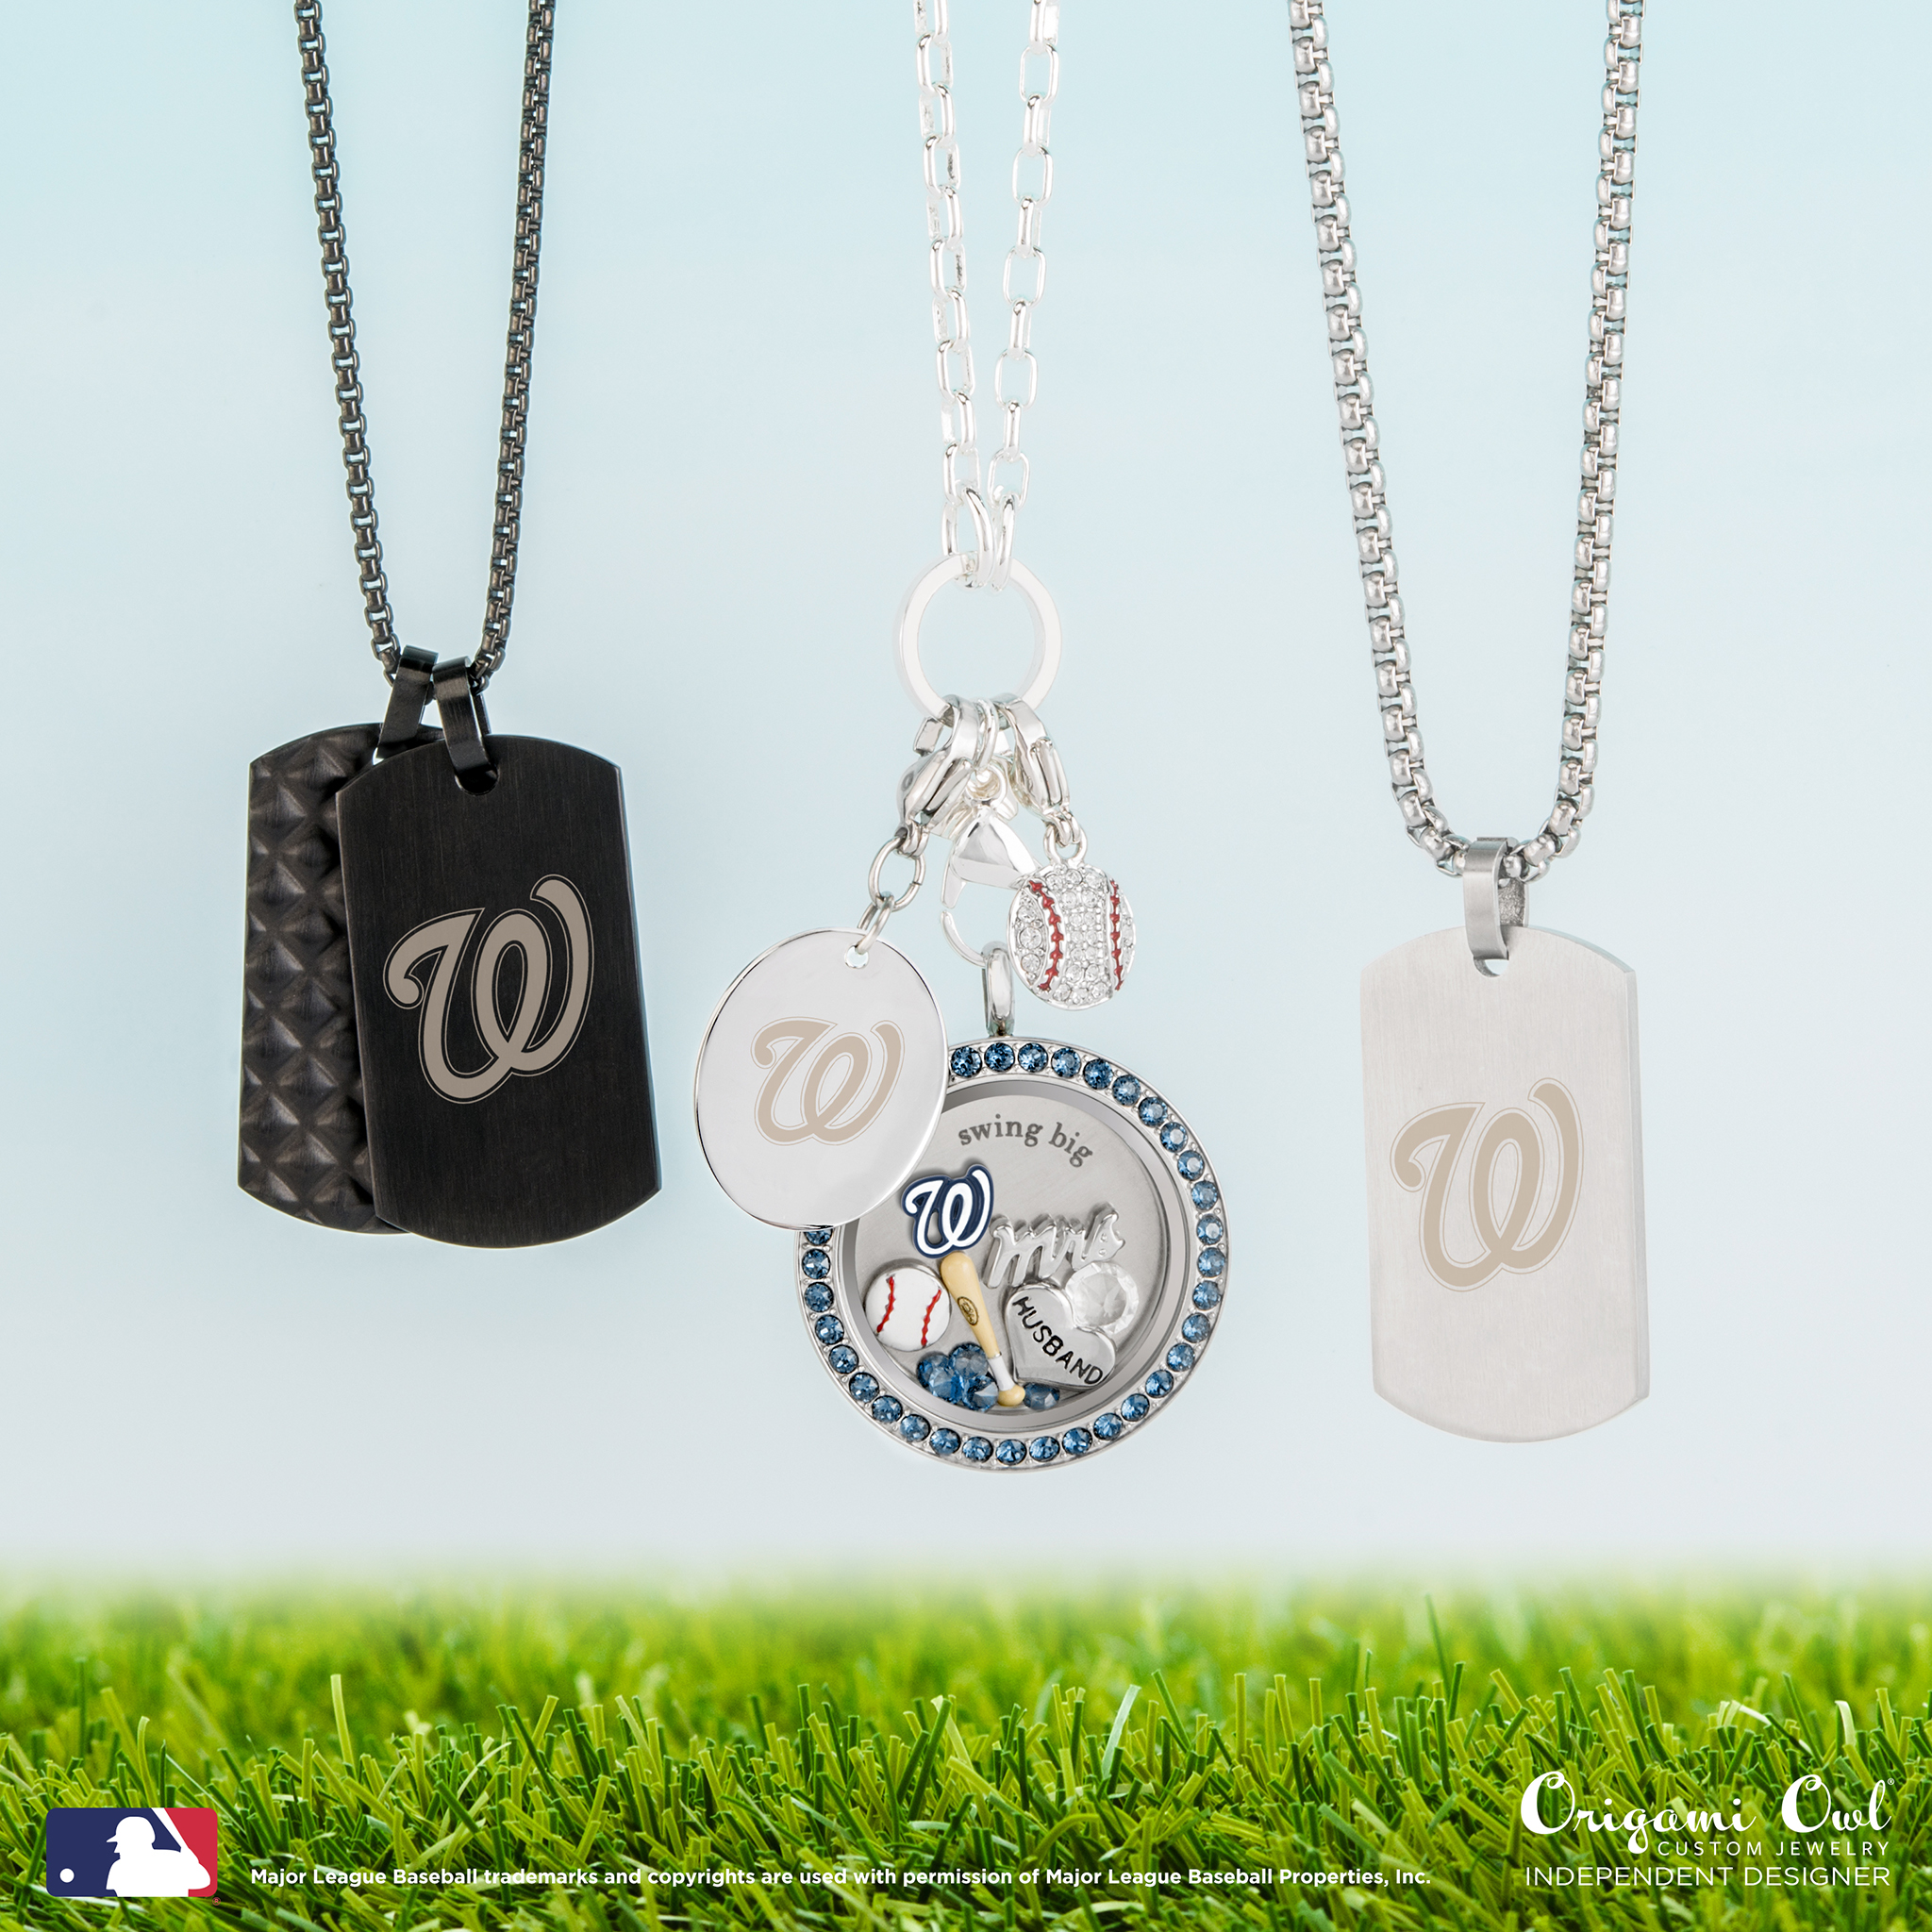 Best Baseball Jewelry to Represent your Favorite MLB Team ... - photo#1